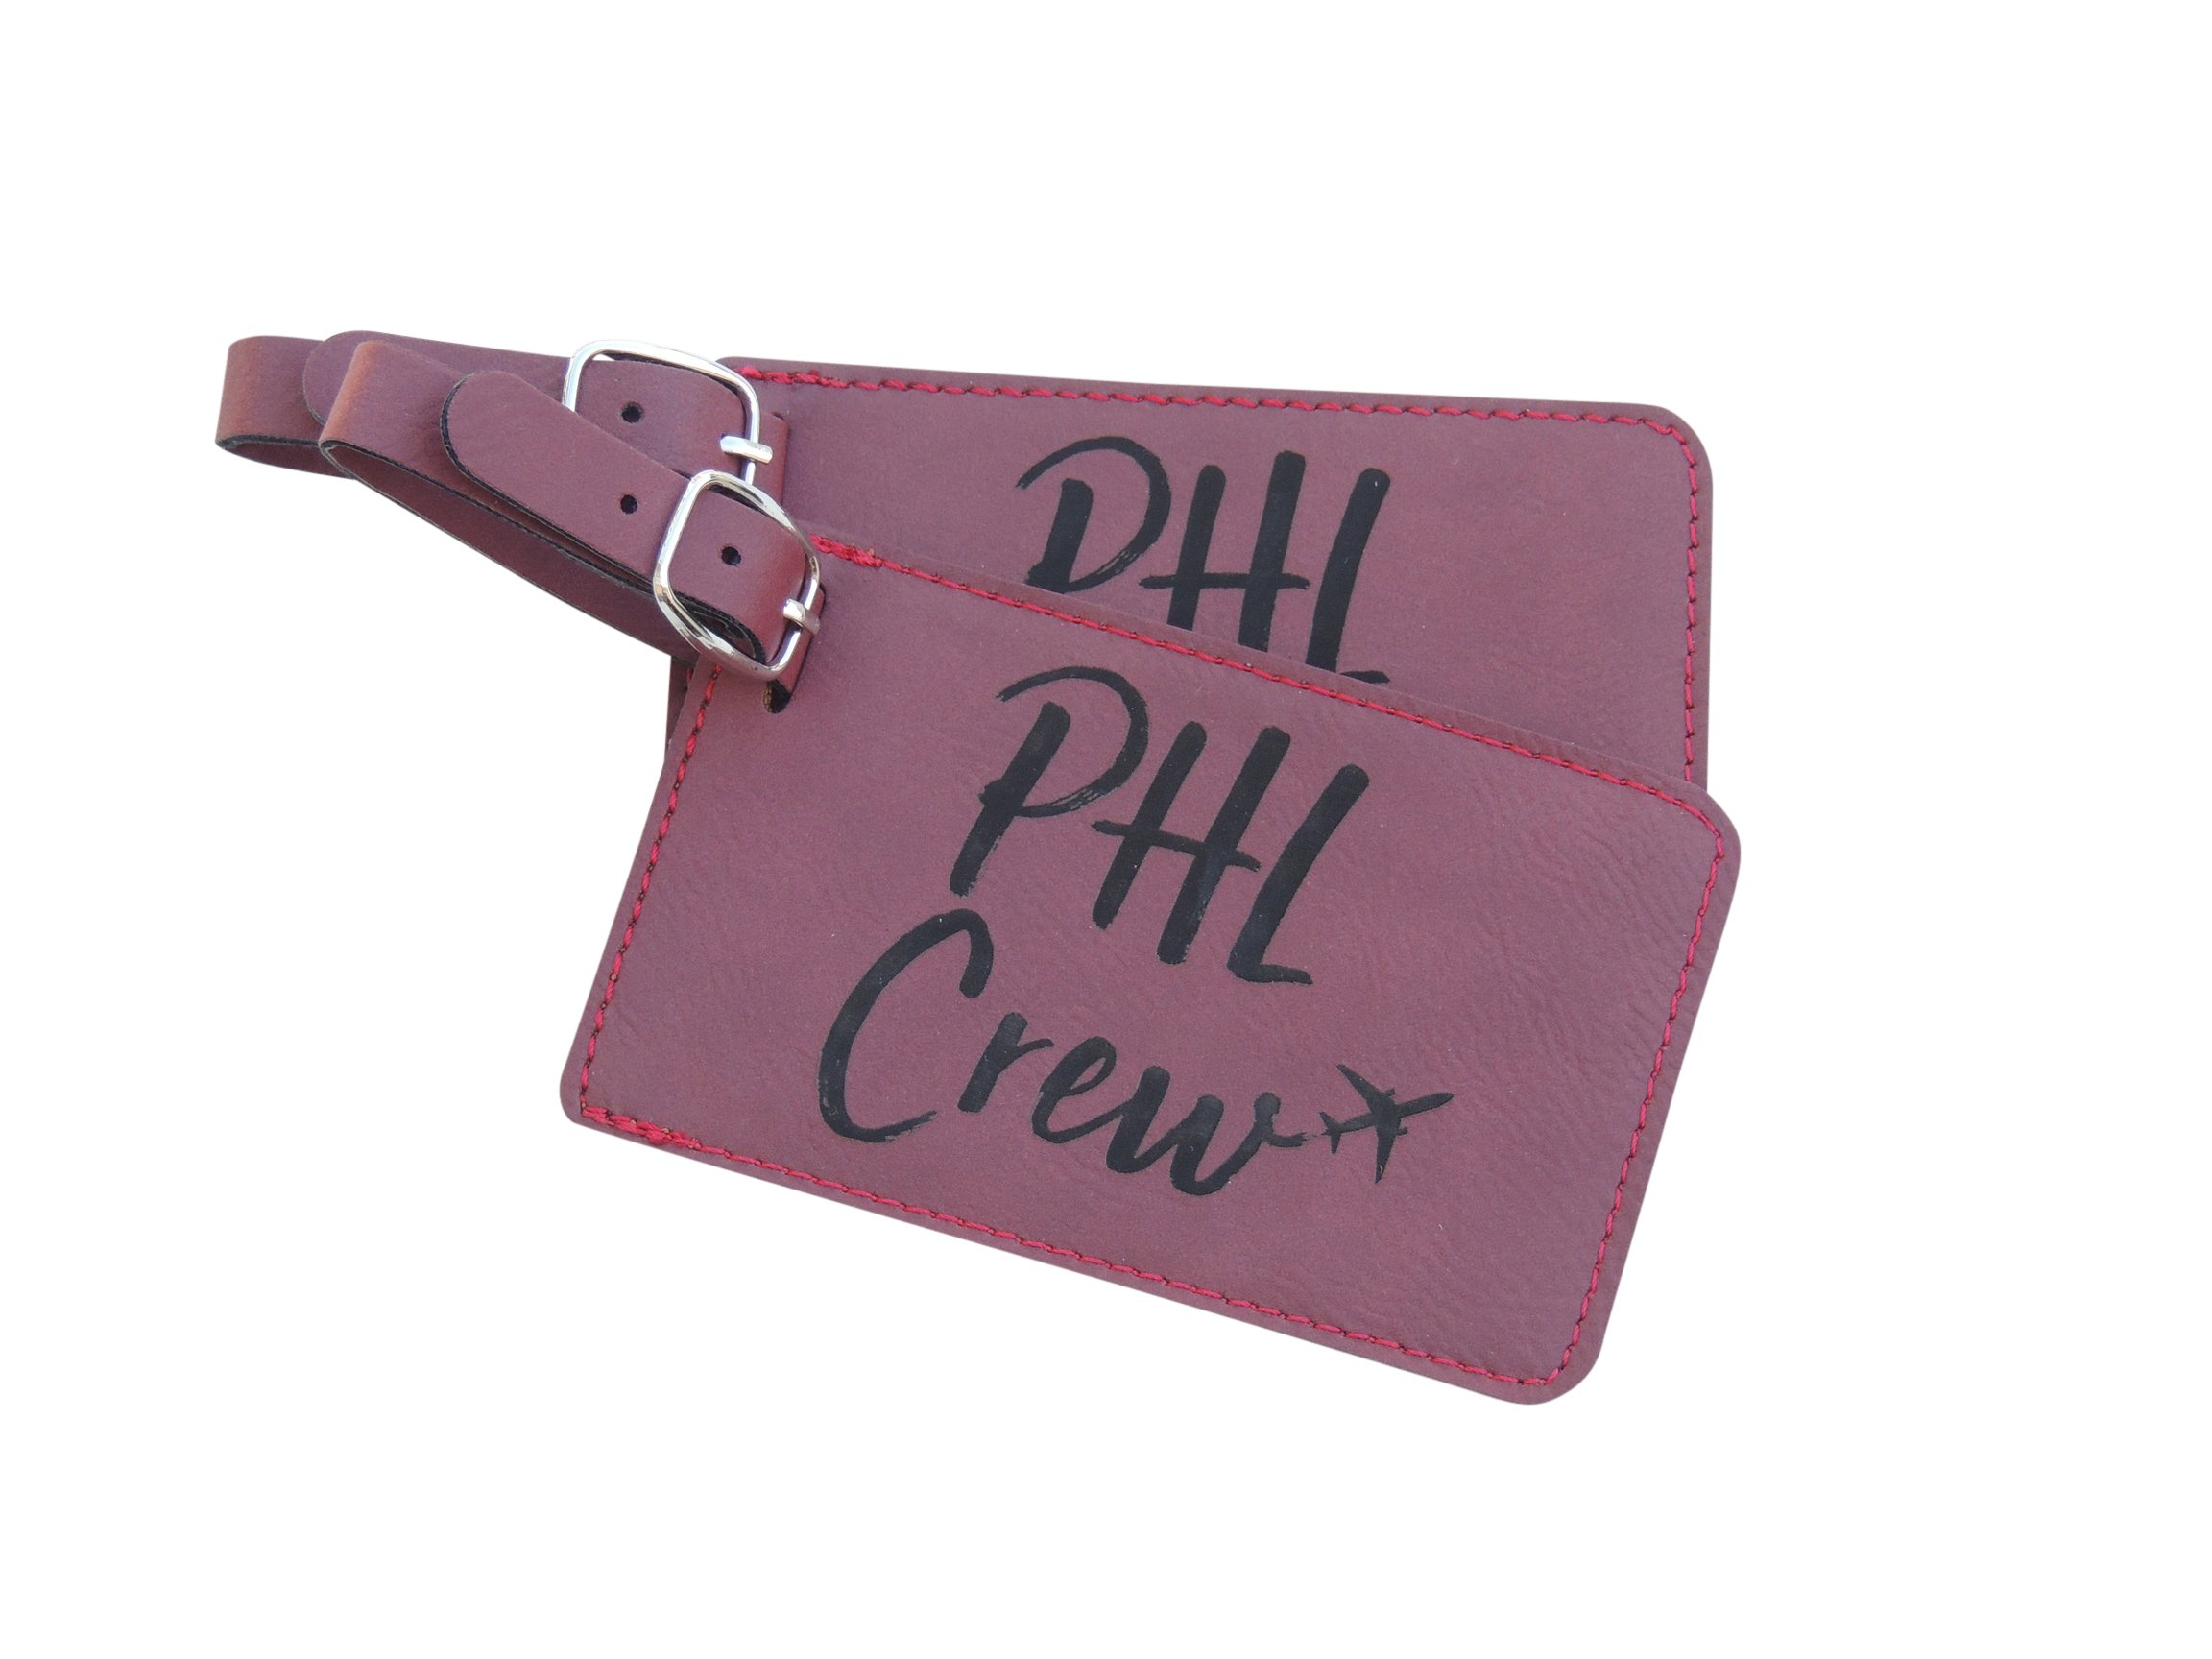 Philadelphia Crew Luggage Tag, American PHL Crew Base Set of Two, (Pink) by Airspeed Junkie (Image #1)